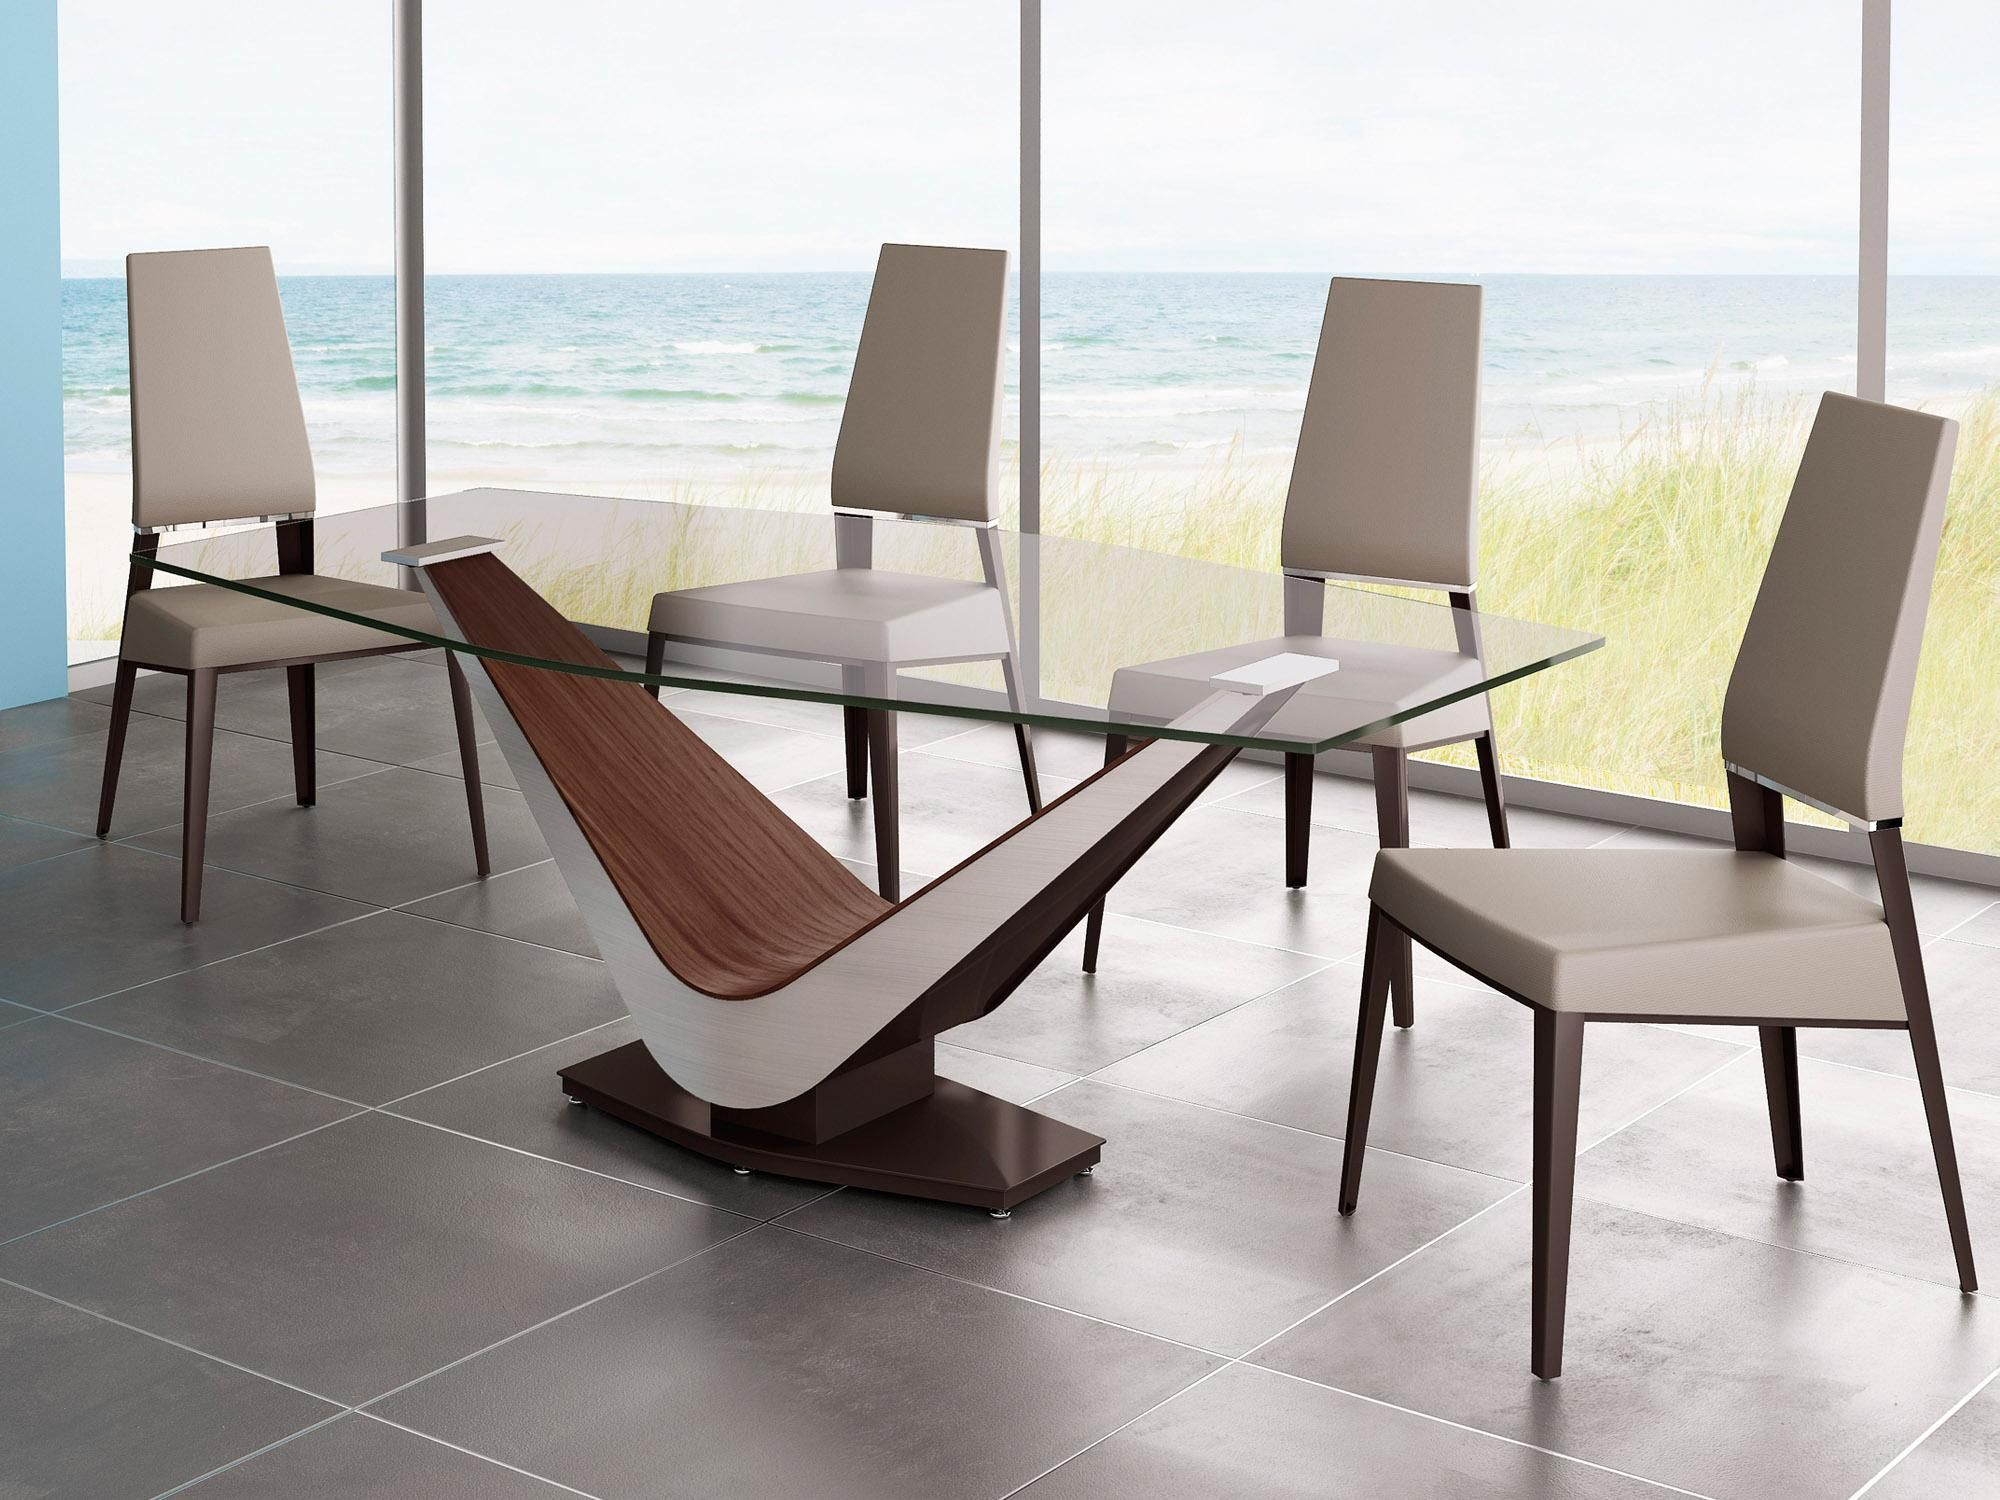 Modern Dining Table Design - Bdn exploring elite modern design scene